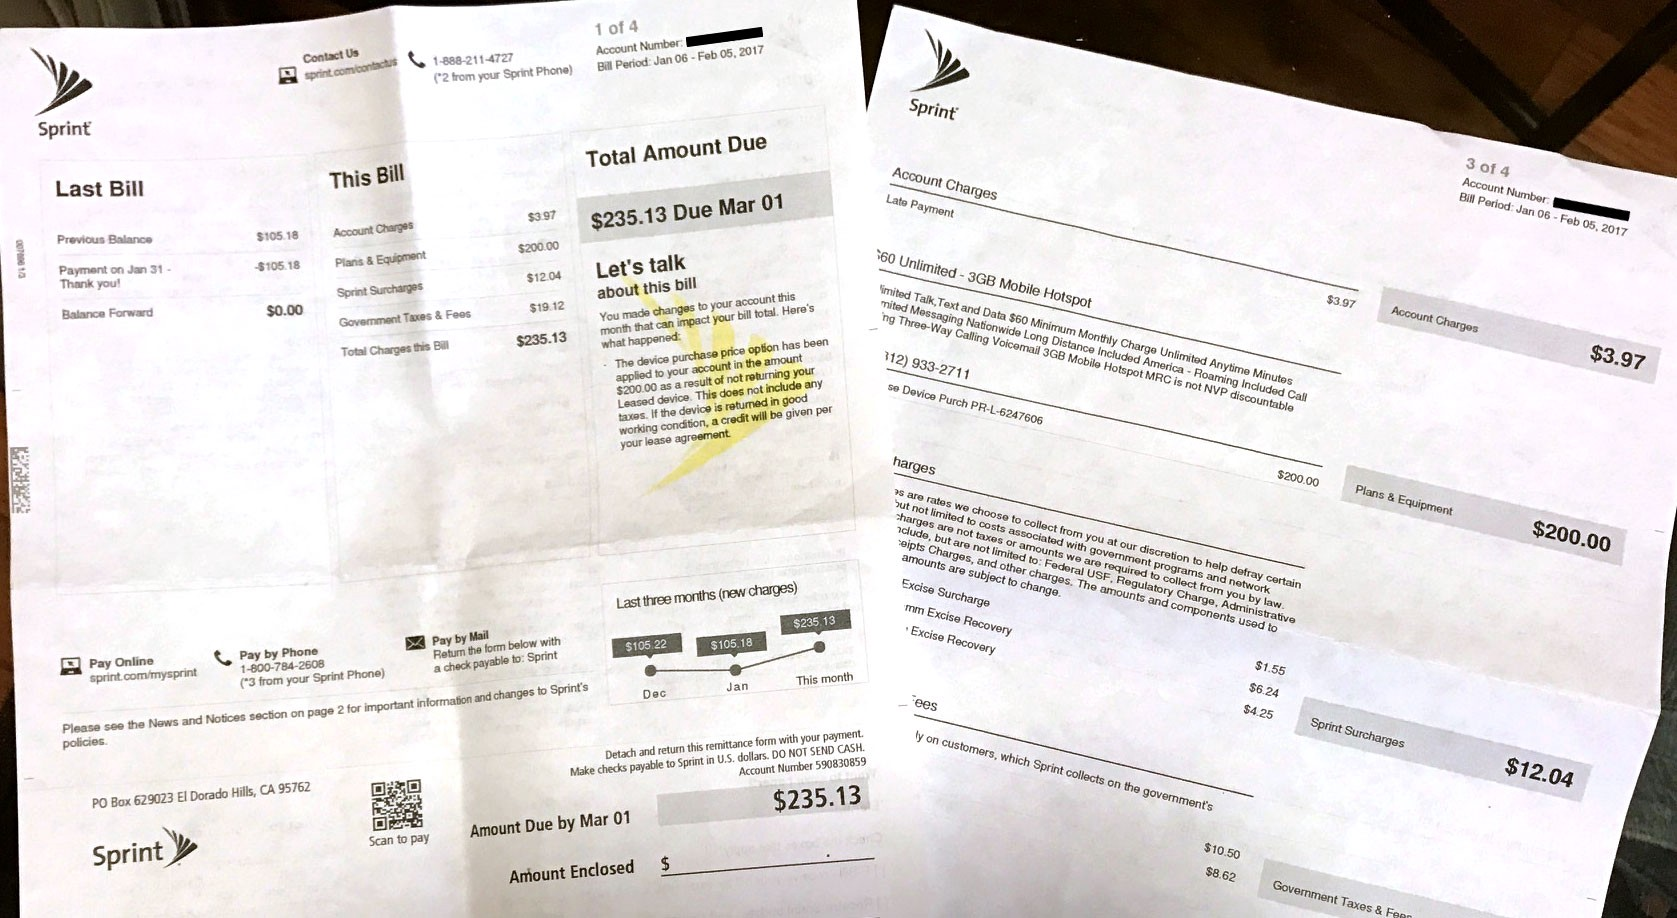 Sprint customers be warned: It's not easy return your leased phone